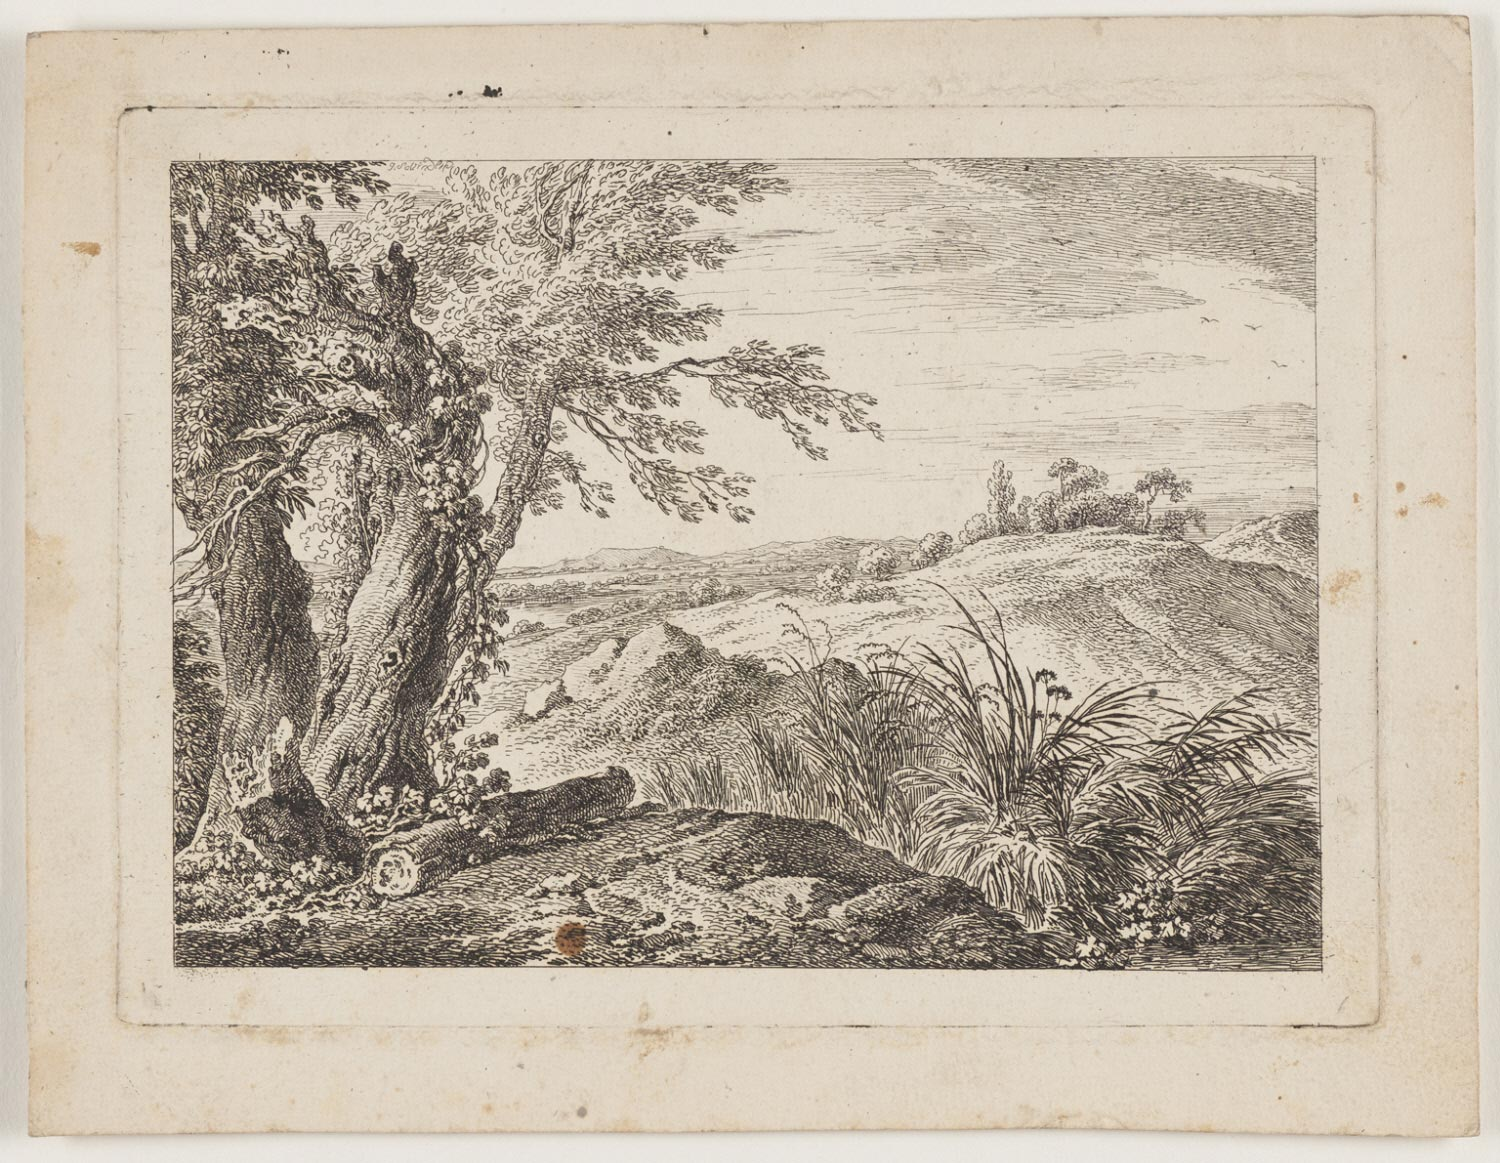 Log and Tree in Foreground, Fields Beyond